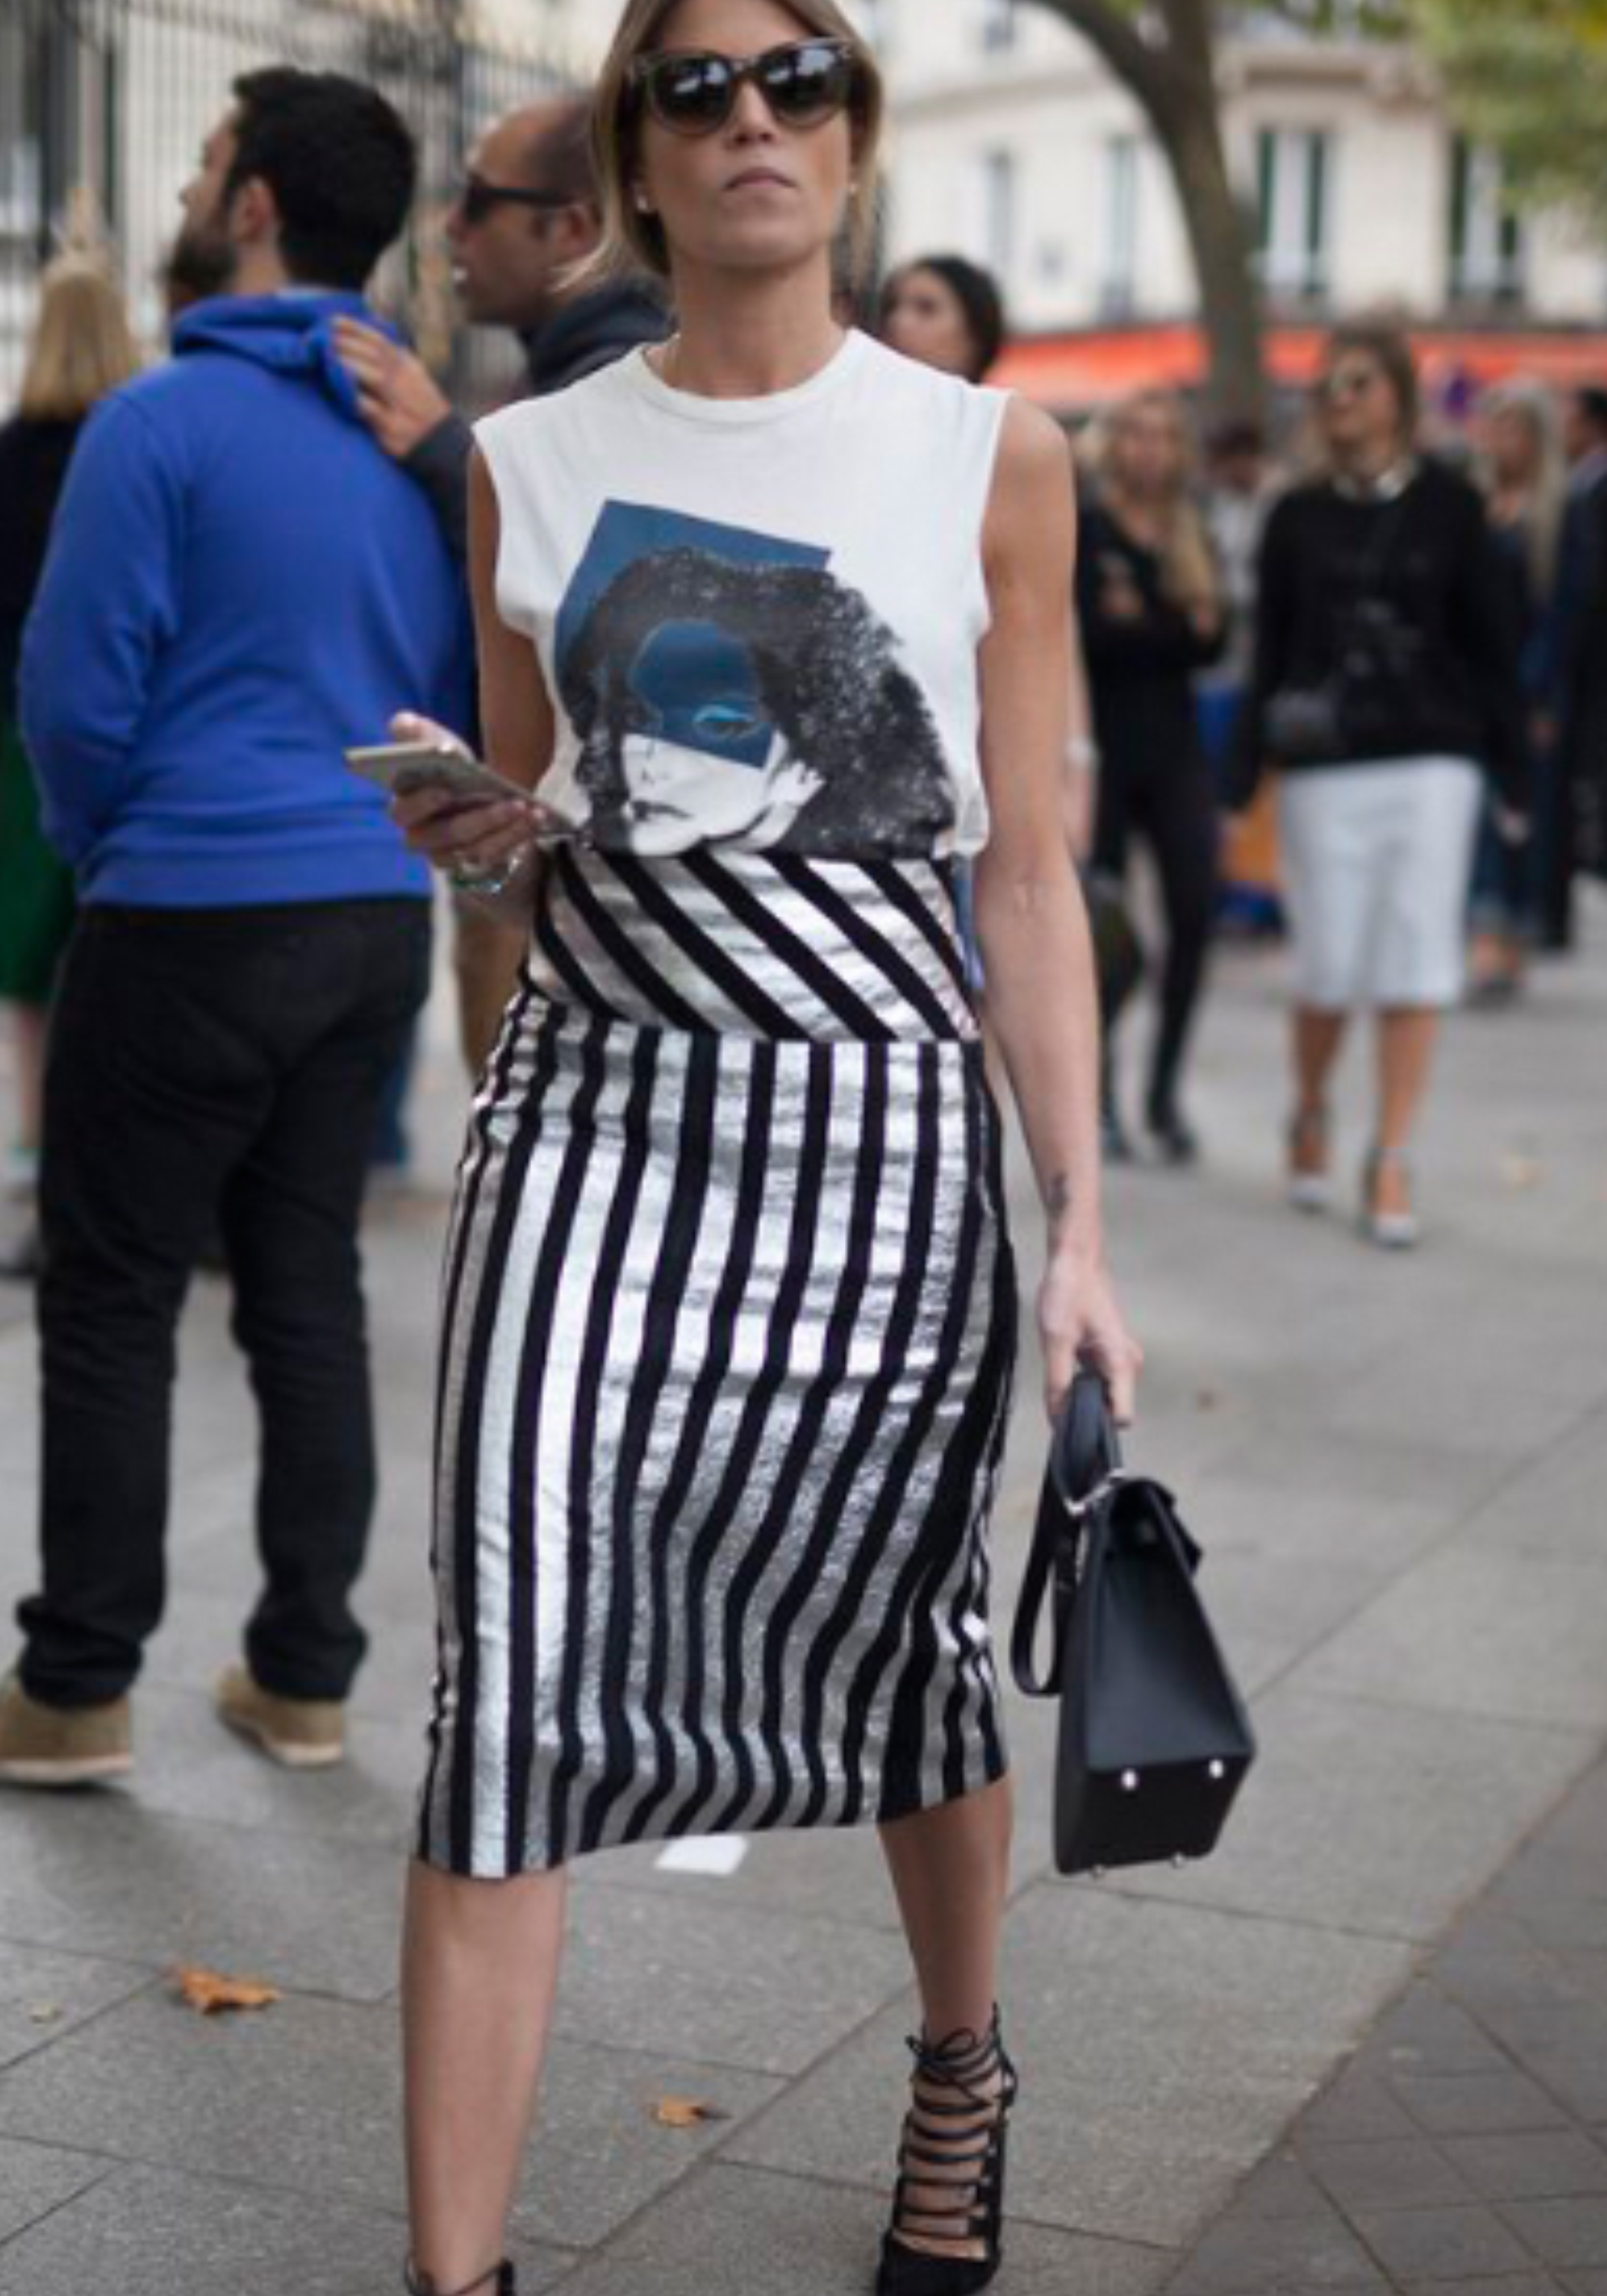 Striped Pencil Skirt + Graphic Muscle Tee | https://thehautemommie.com/haute-style-midi-skirts-tee-shirts/